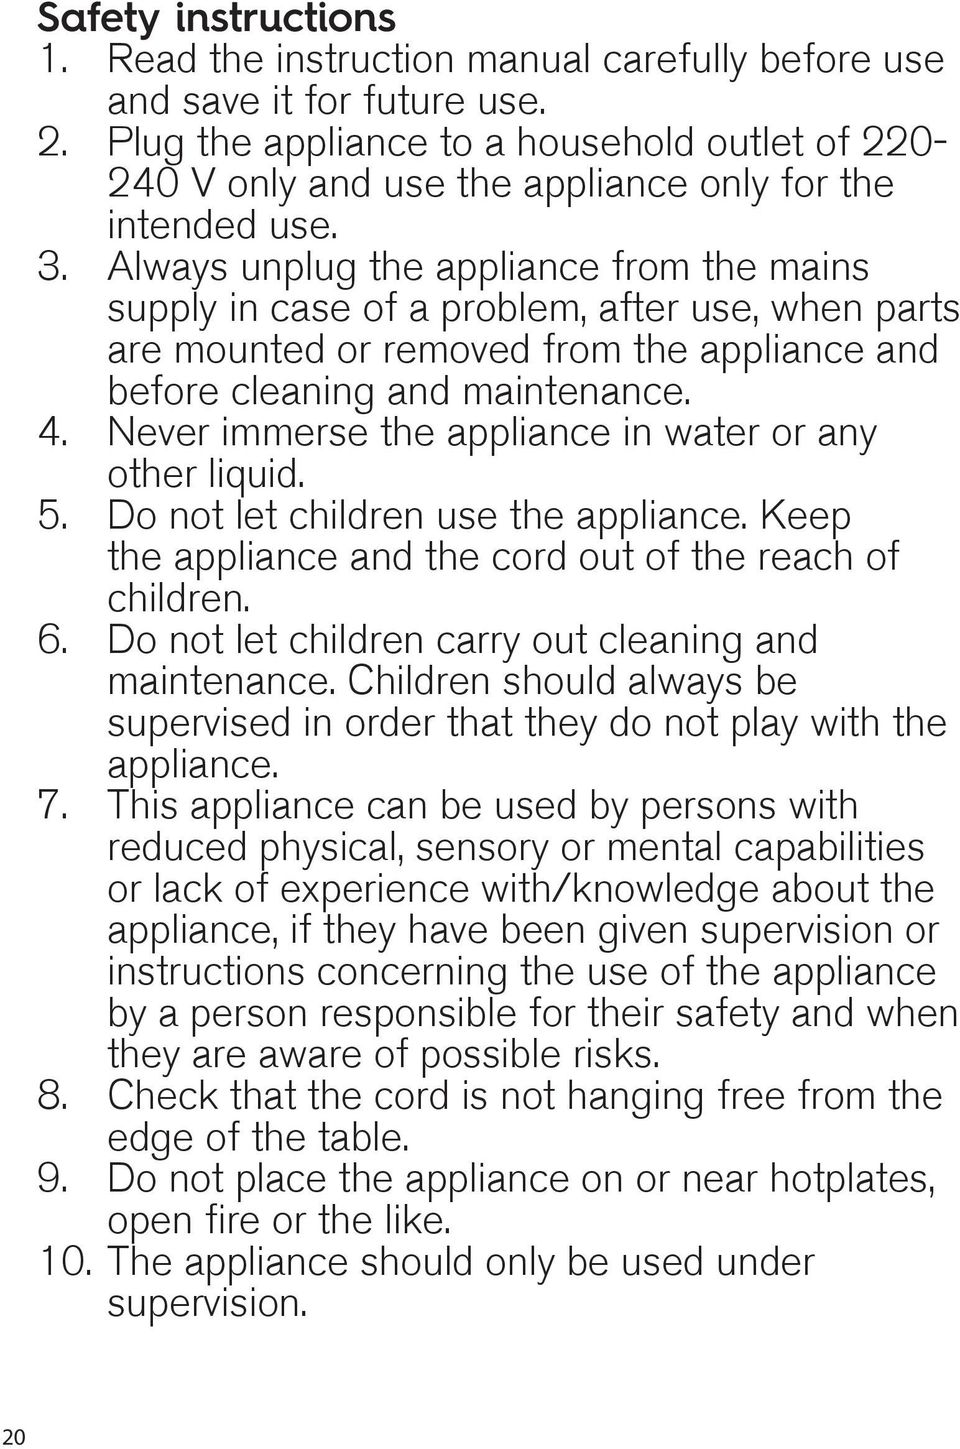 Always unplug the appliance from the mains supply in case of a problem, after use, when parts are mounted or removed from the appliance and before cleaning and maintenance. 4.